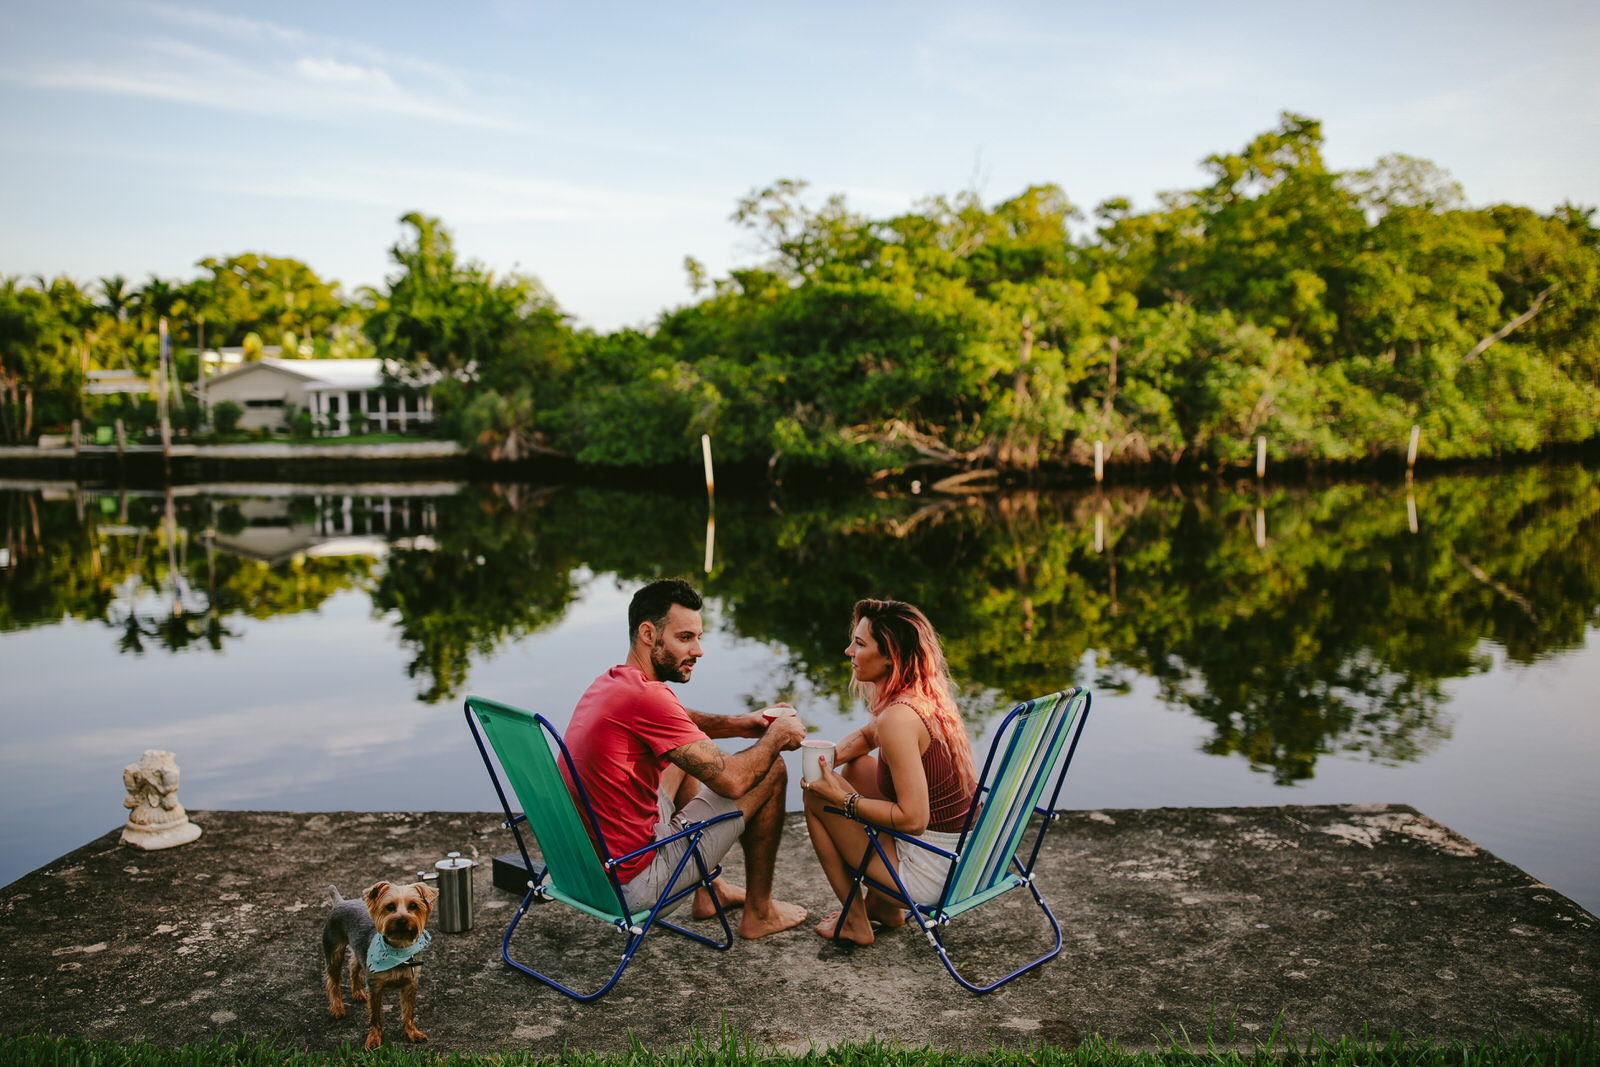 fort-lauderdale-engagement-day-in-the-life-session-morning-coffee-couple-tiny-house-photo-26.jpg